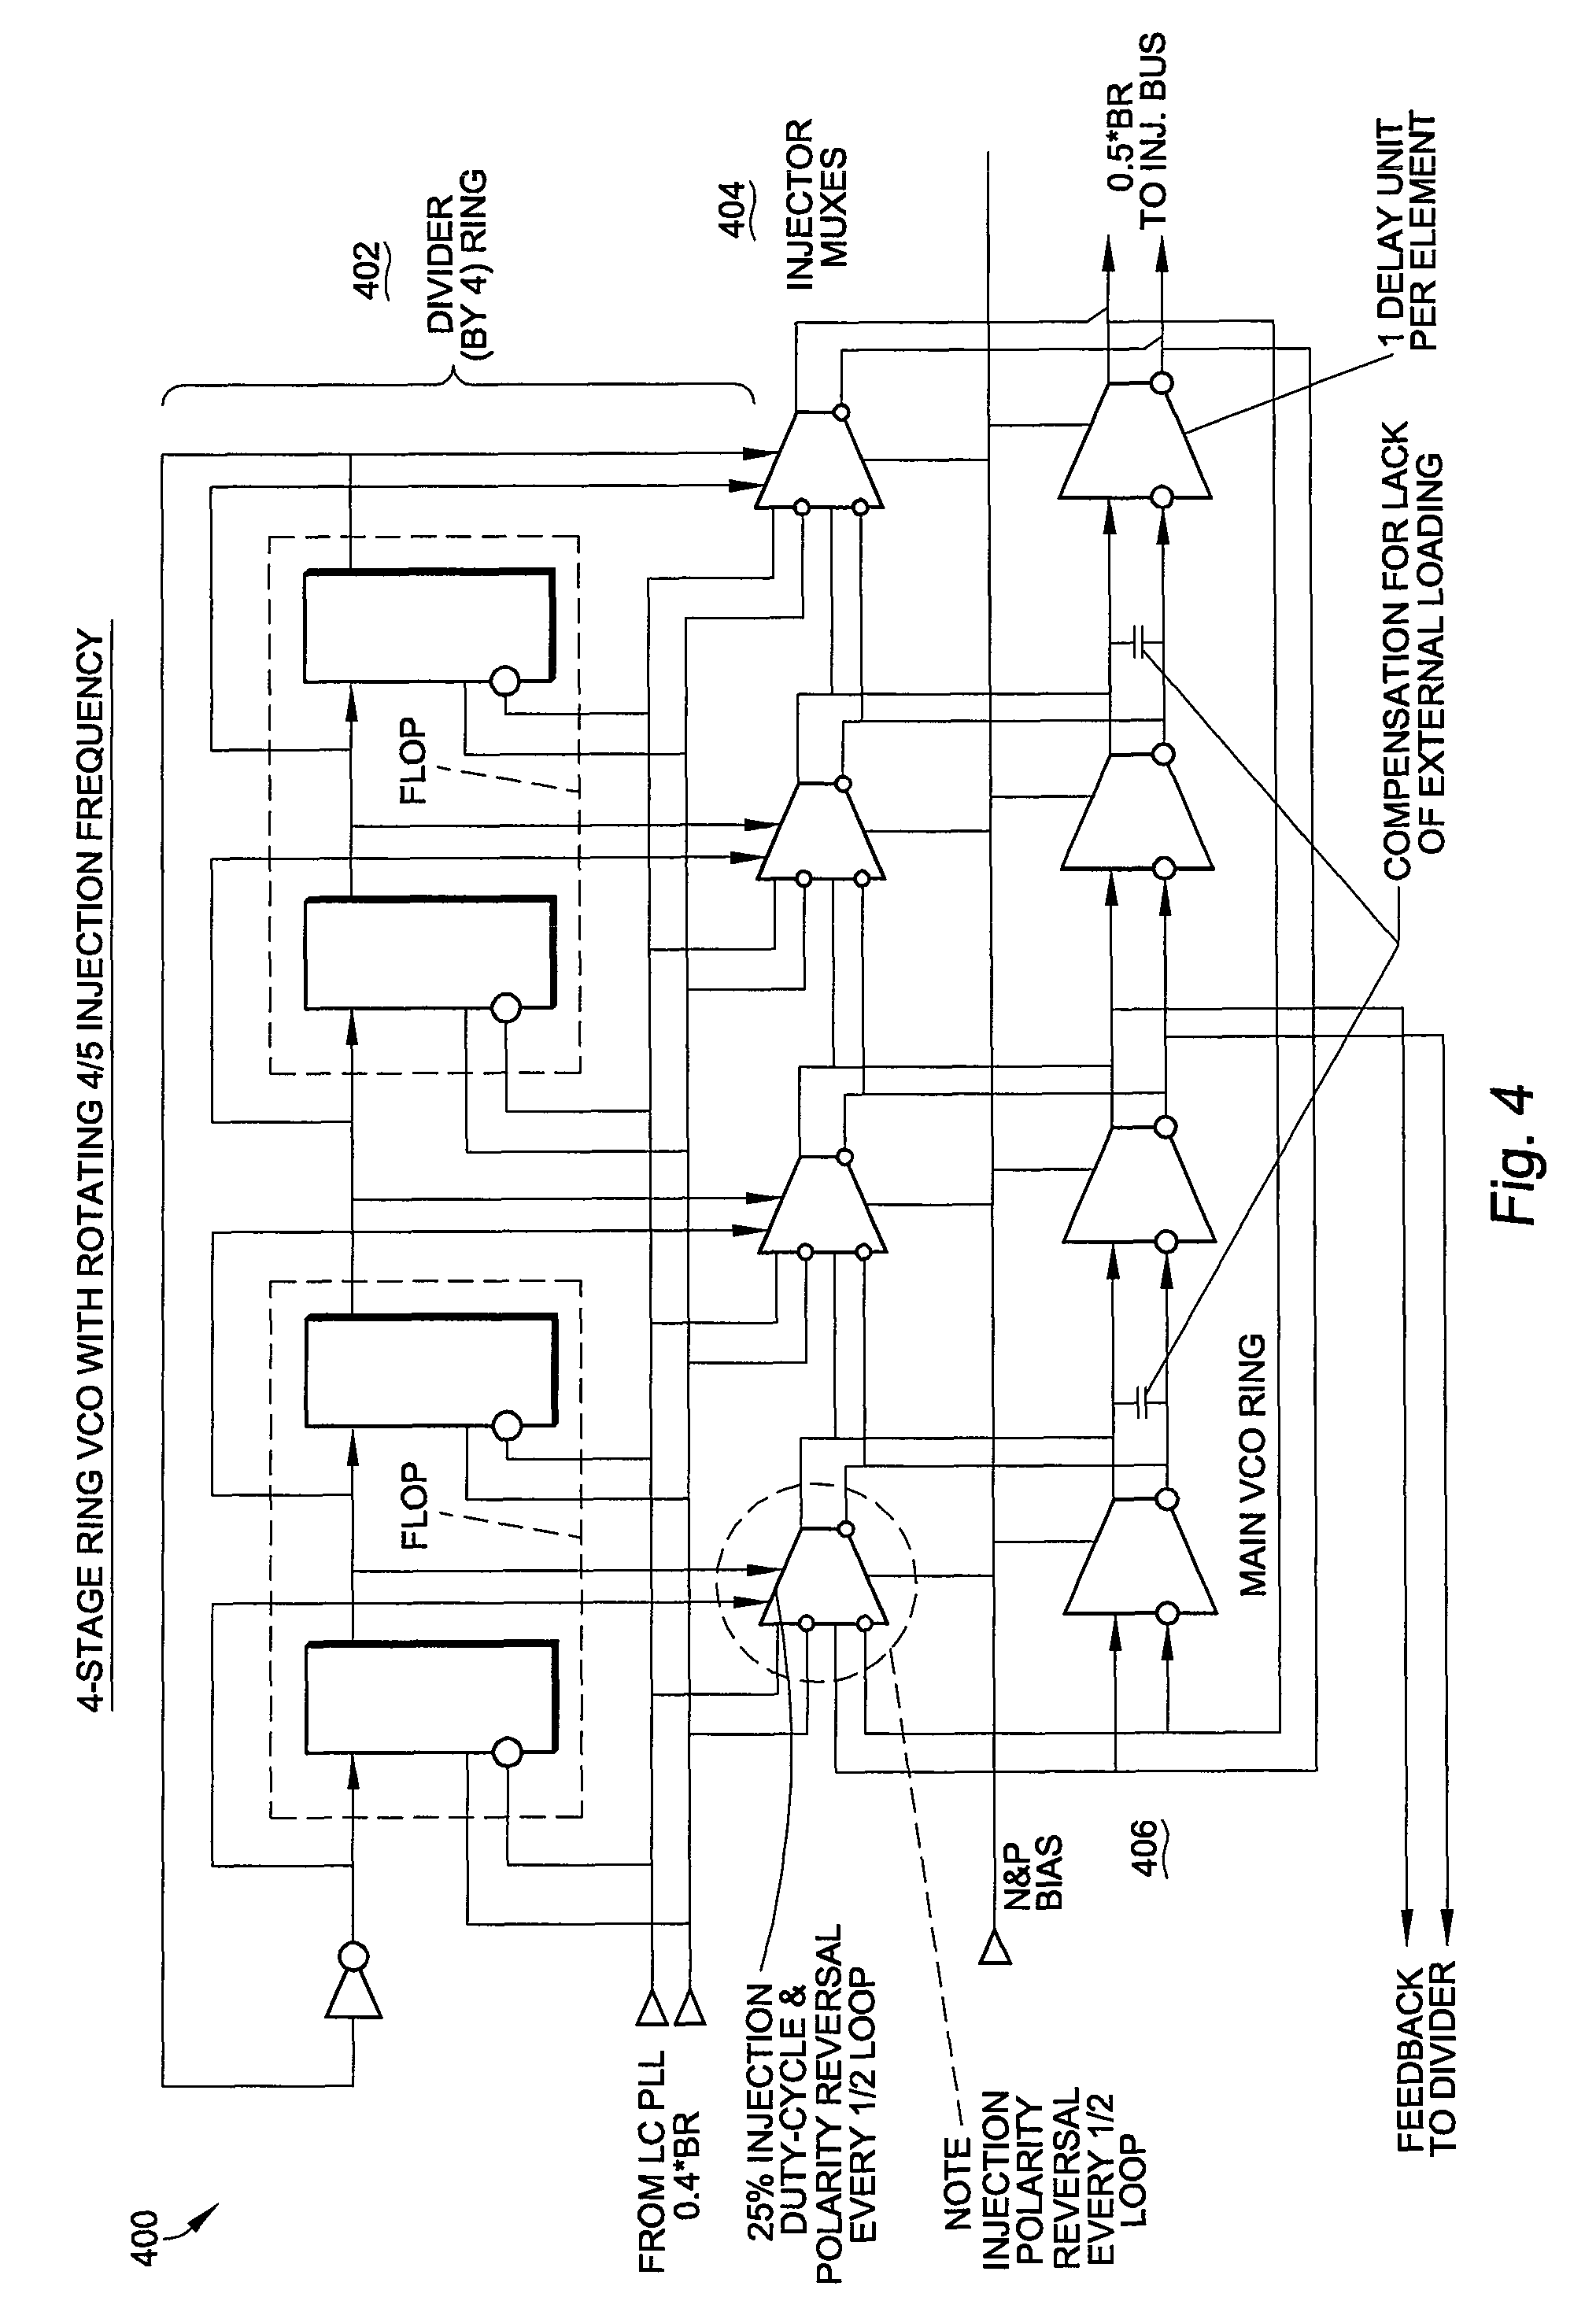 Patent Us8754682 Fractional Divider For Avoidance Of Lc Vco 2 Mhz Frequency Standard With Dividers Drawing